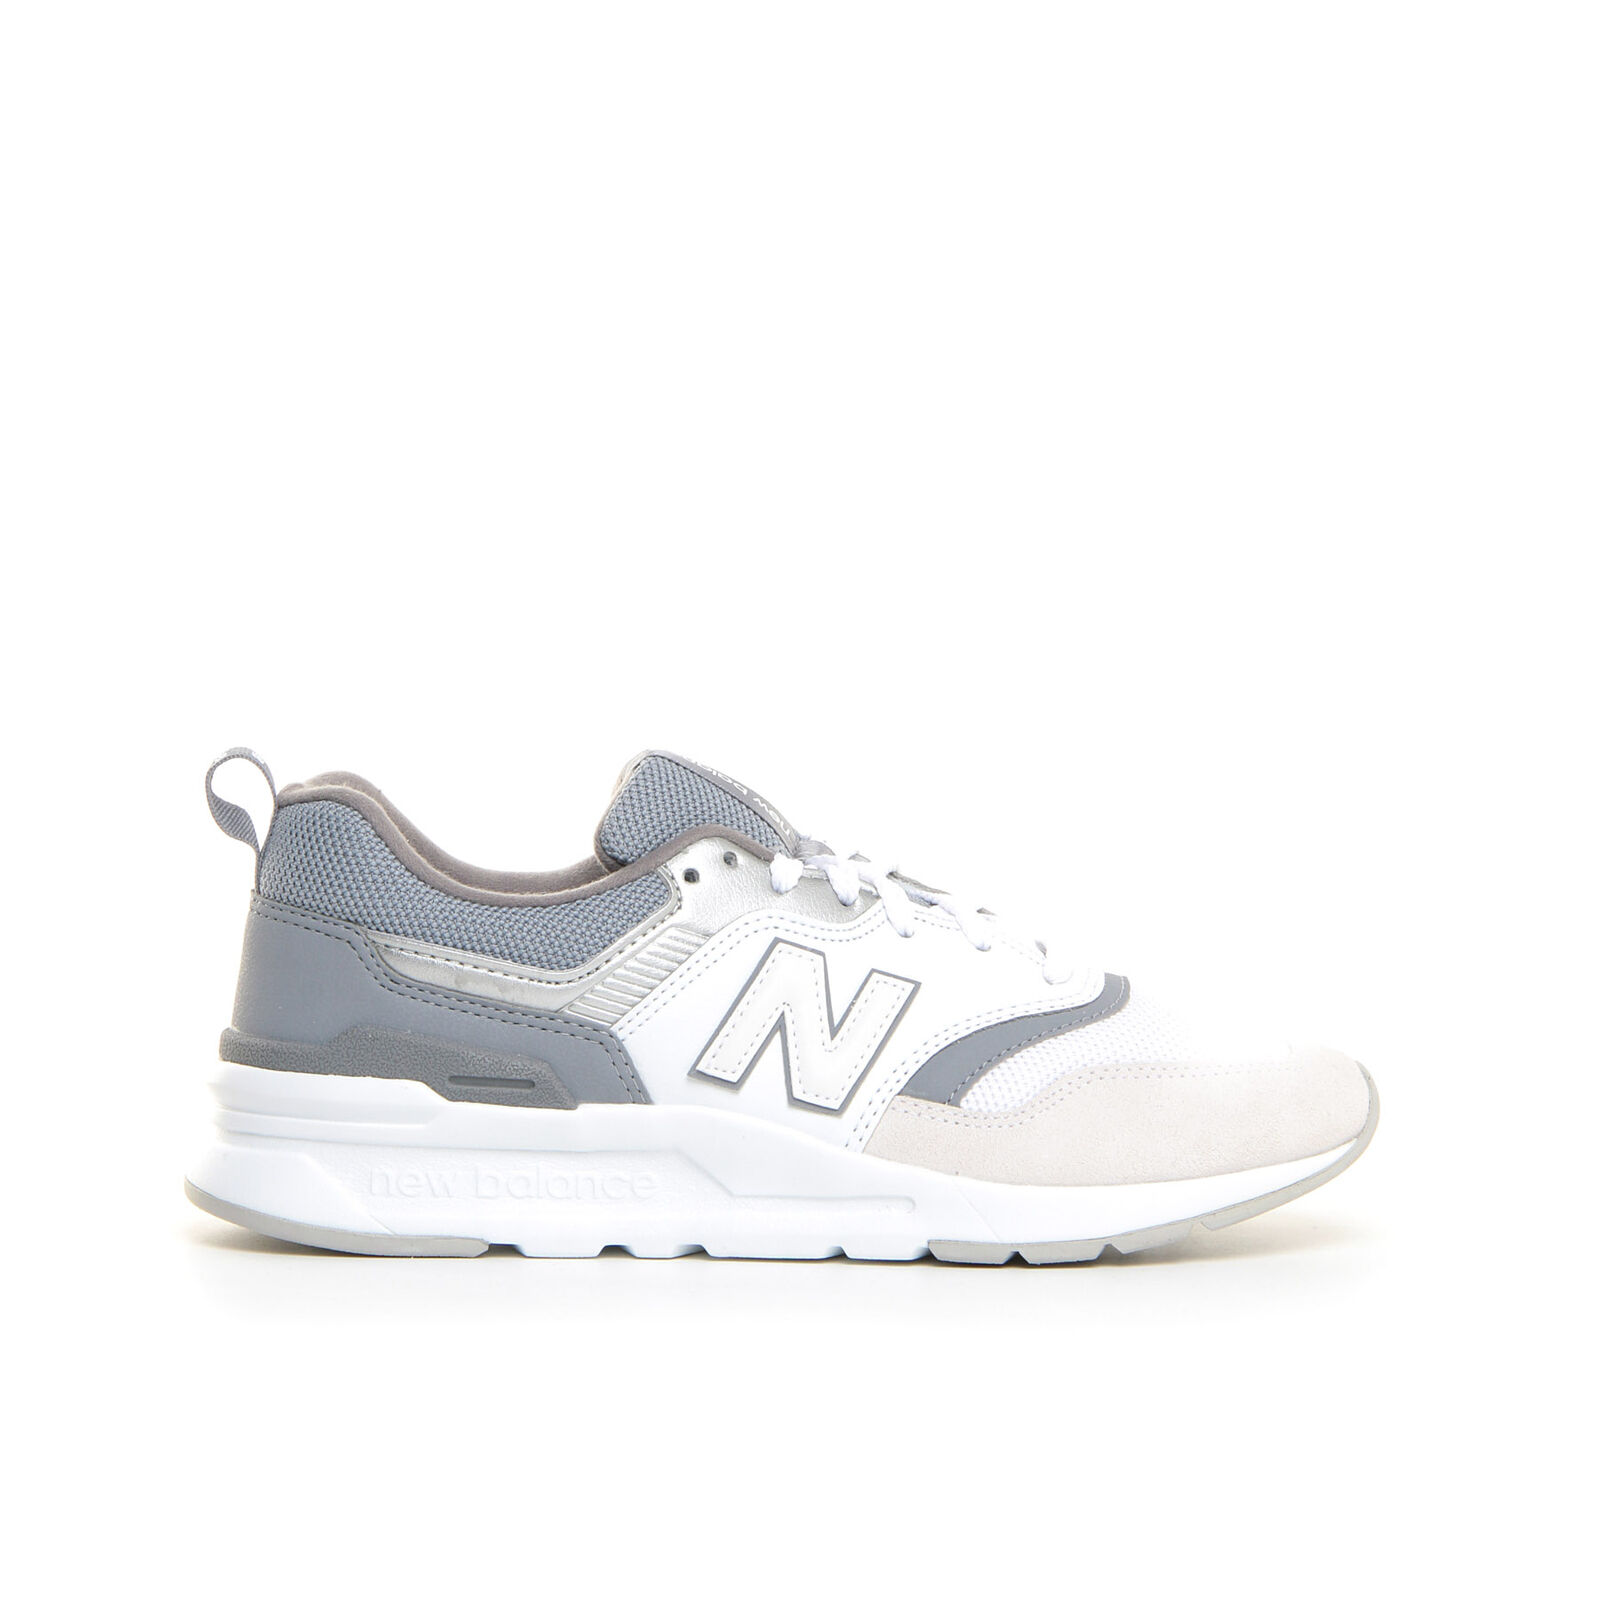 New balance 997 womens shoes free time woman nbcw 997hed